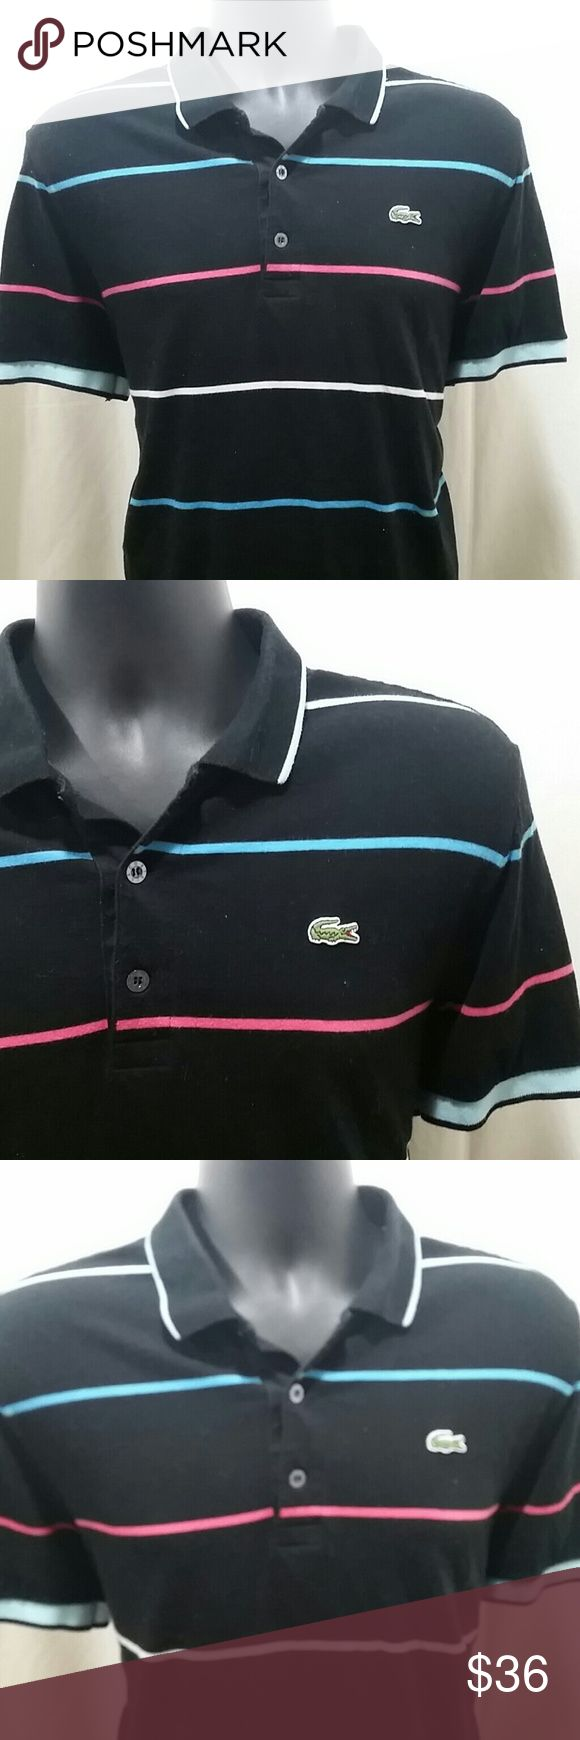 LACOSTE SPORT Striped Polo Shirt Size 5 Handsome LACOSTE SPORT Polo Shirt,  in black with blue,  red, and white stripes.   This Shirt is a size 5, which equates to a size Large.   This LACOSTE SPORT Polo Shirt is in excellent condition. Lacoste Shirts Polos